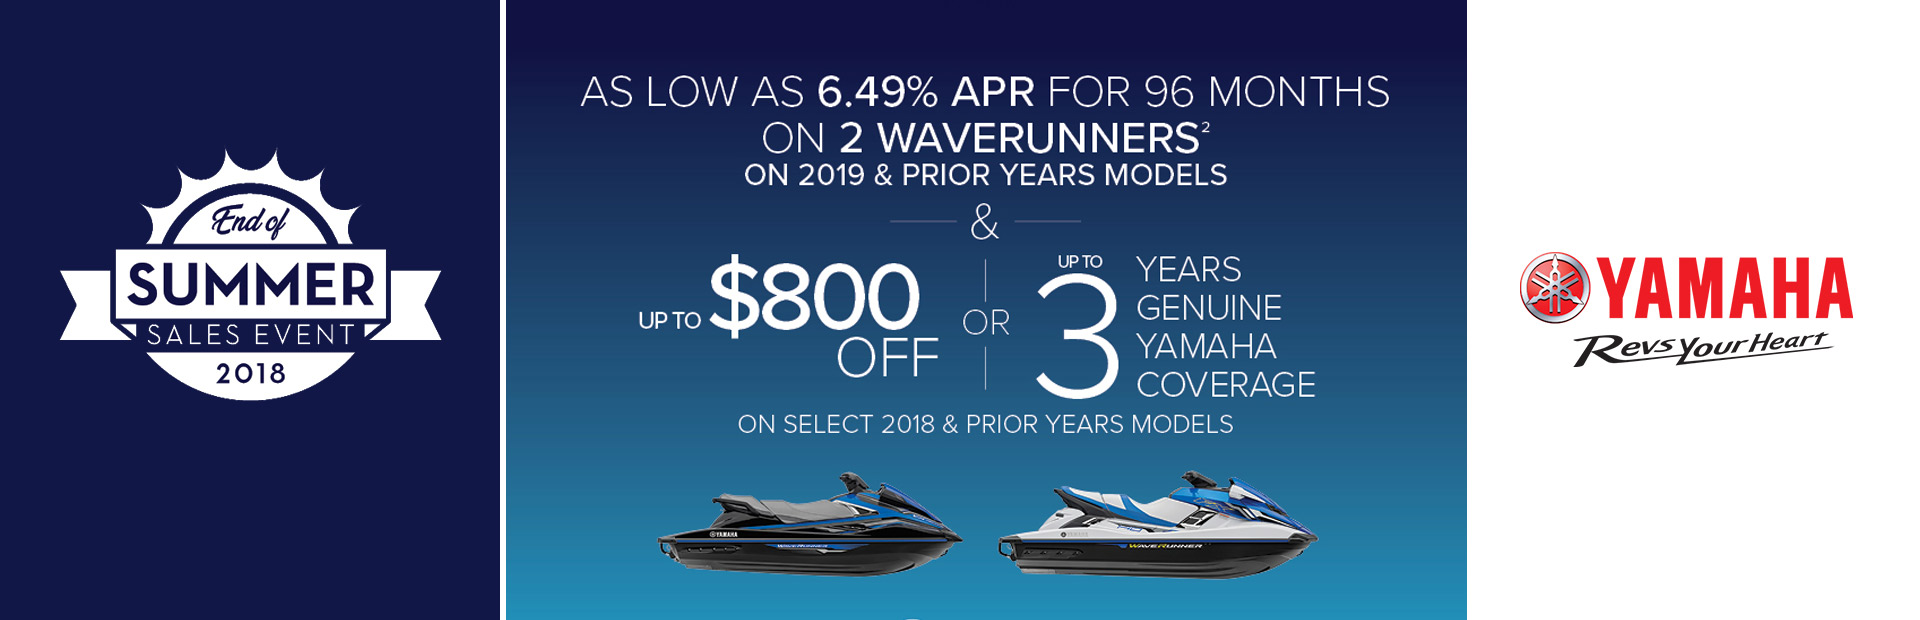 Yamaha: End of Season Sales Event - As Low As 6.49% APR